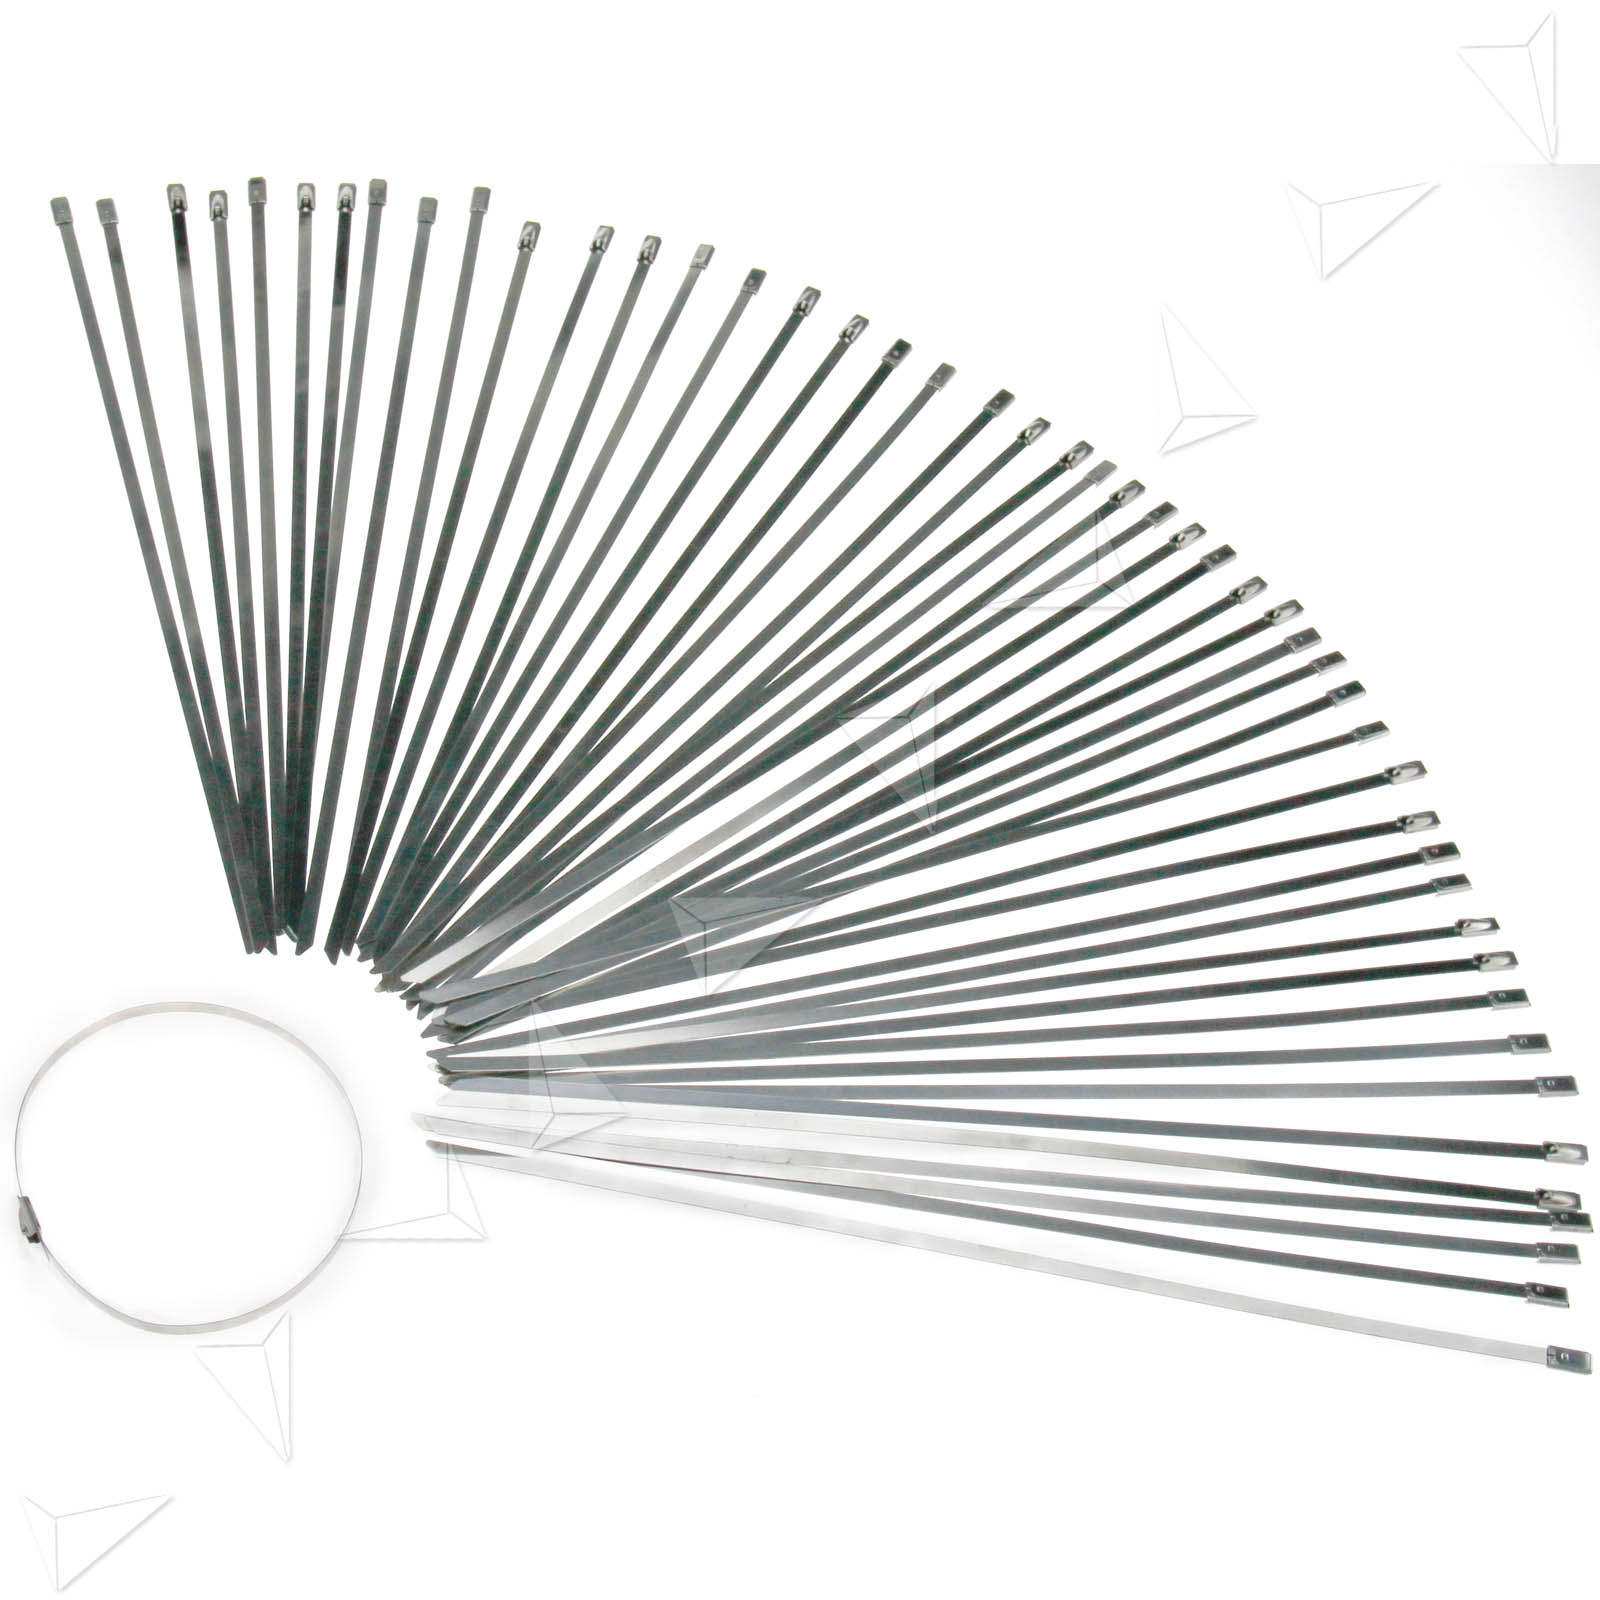 50 X Top Quality Stainless Steel Metal Cable Ties